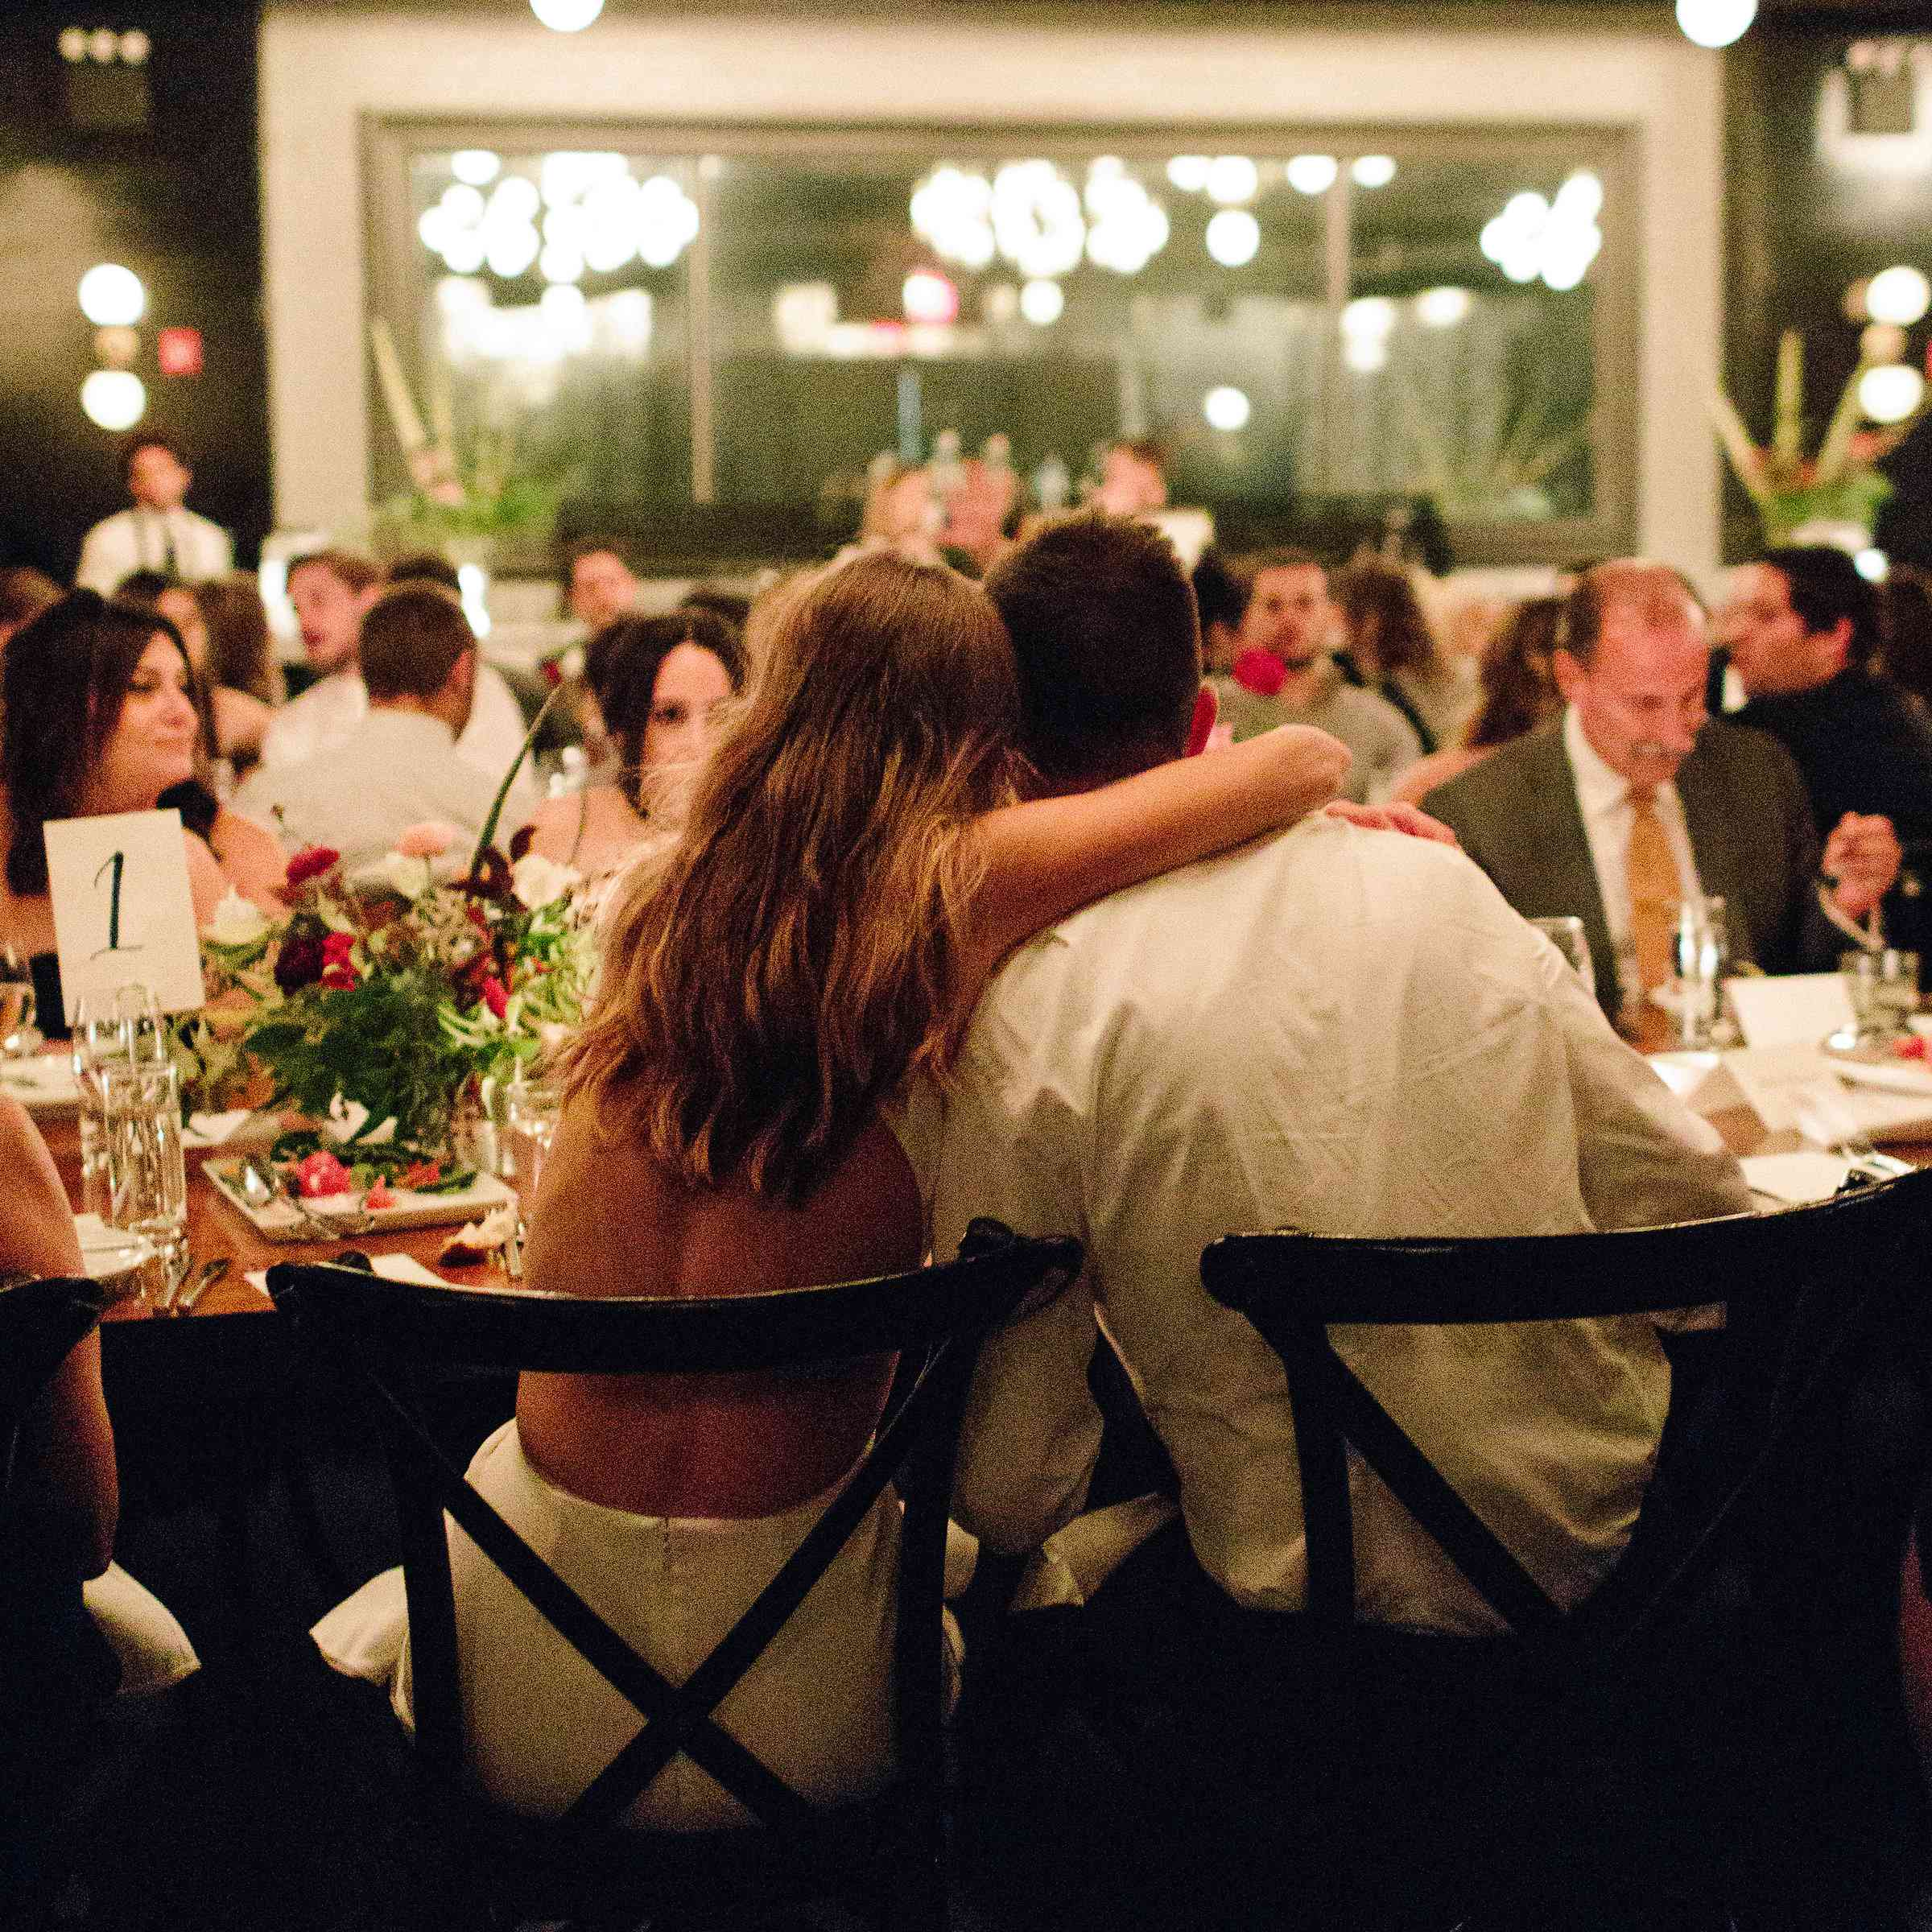 Bride and groom during dinner